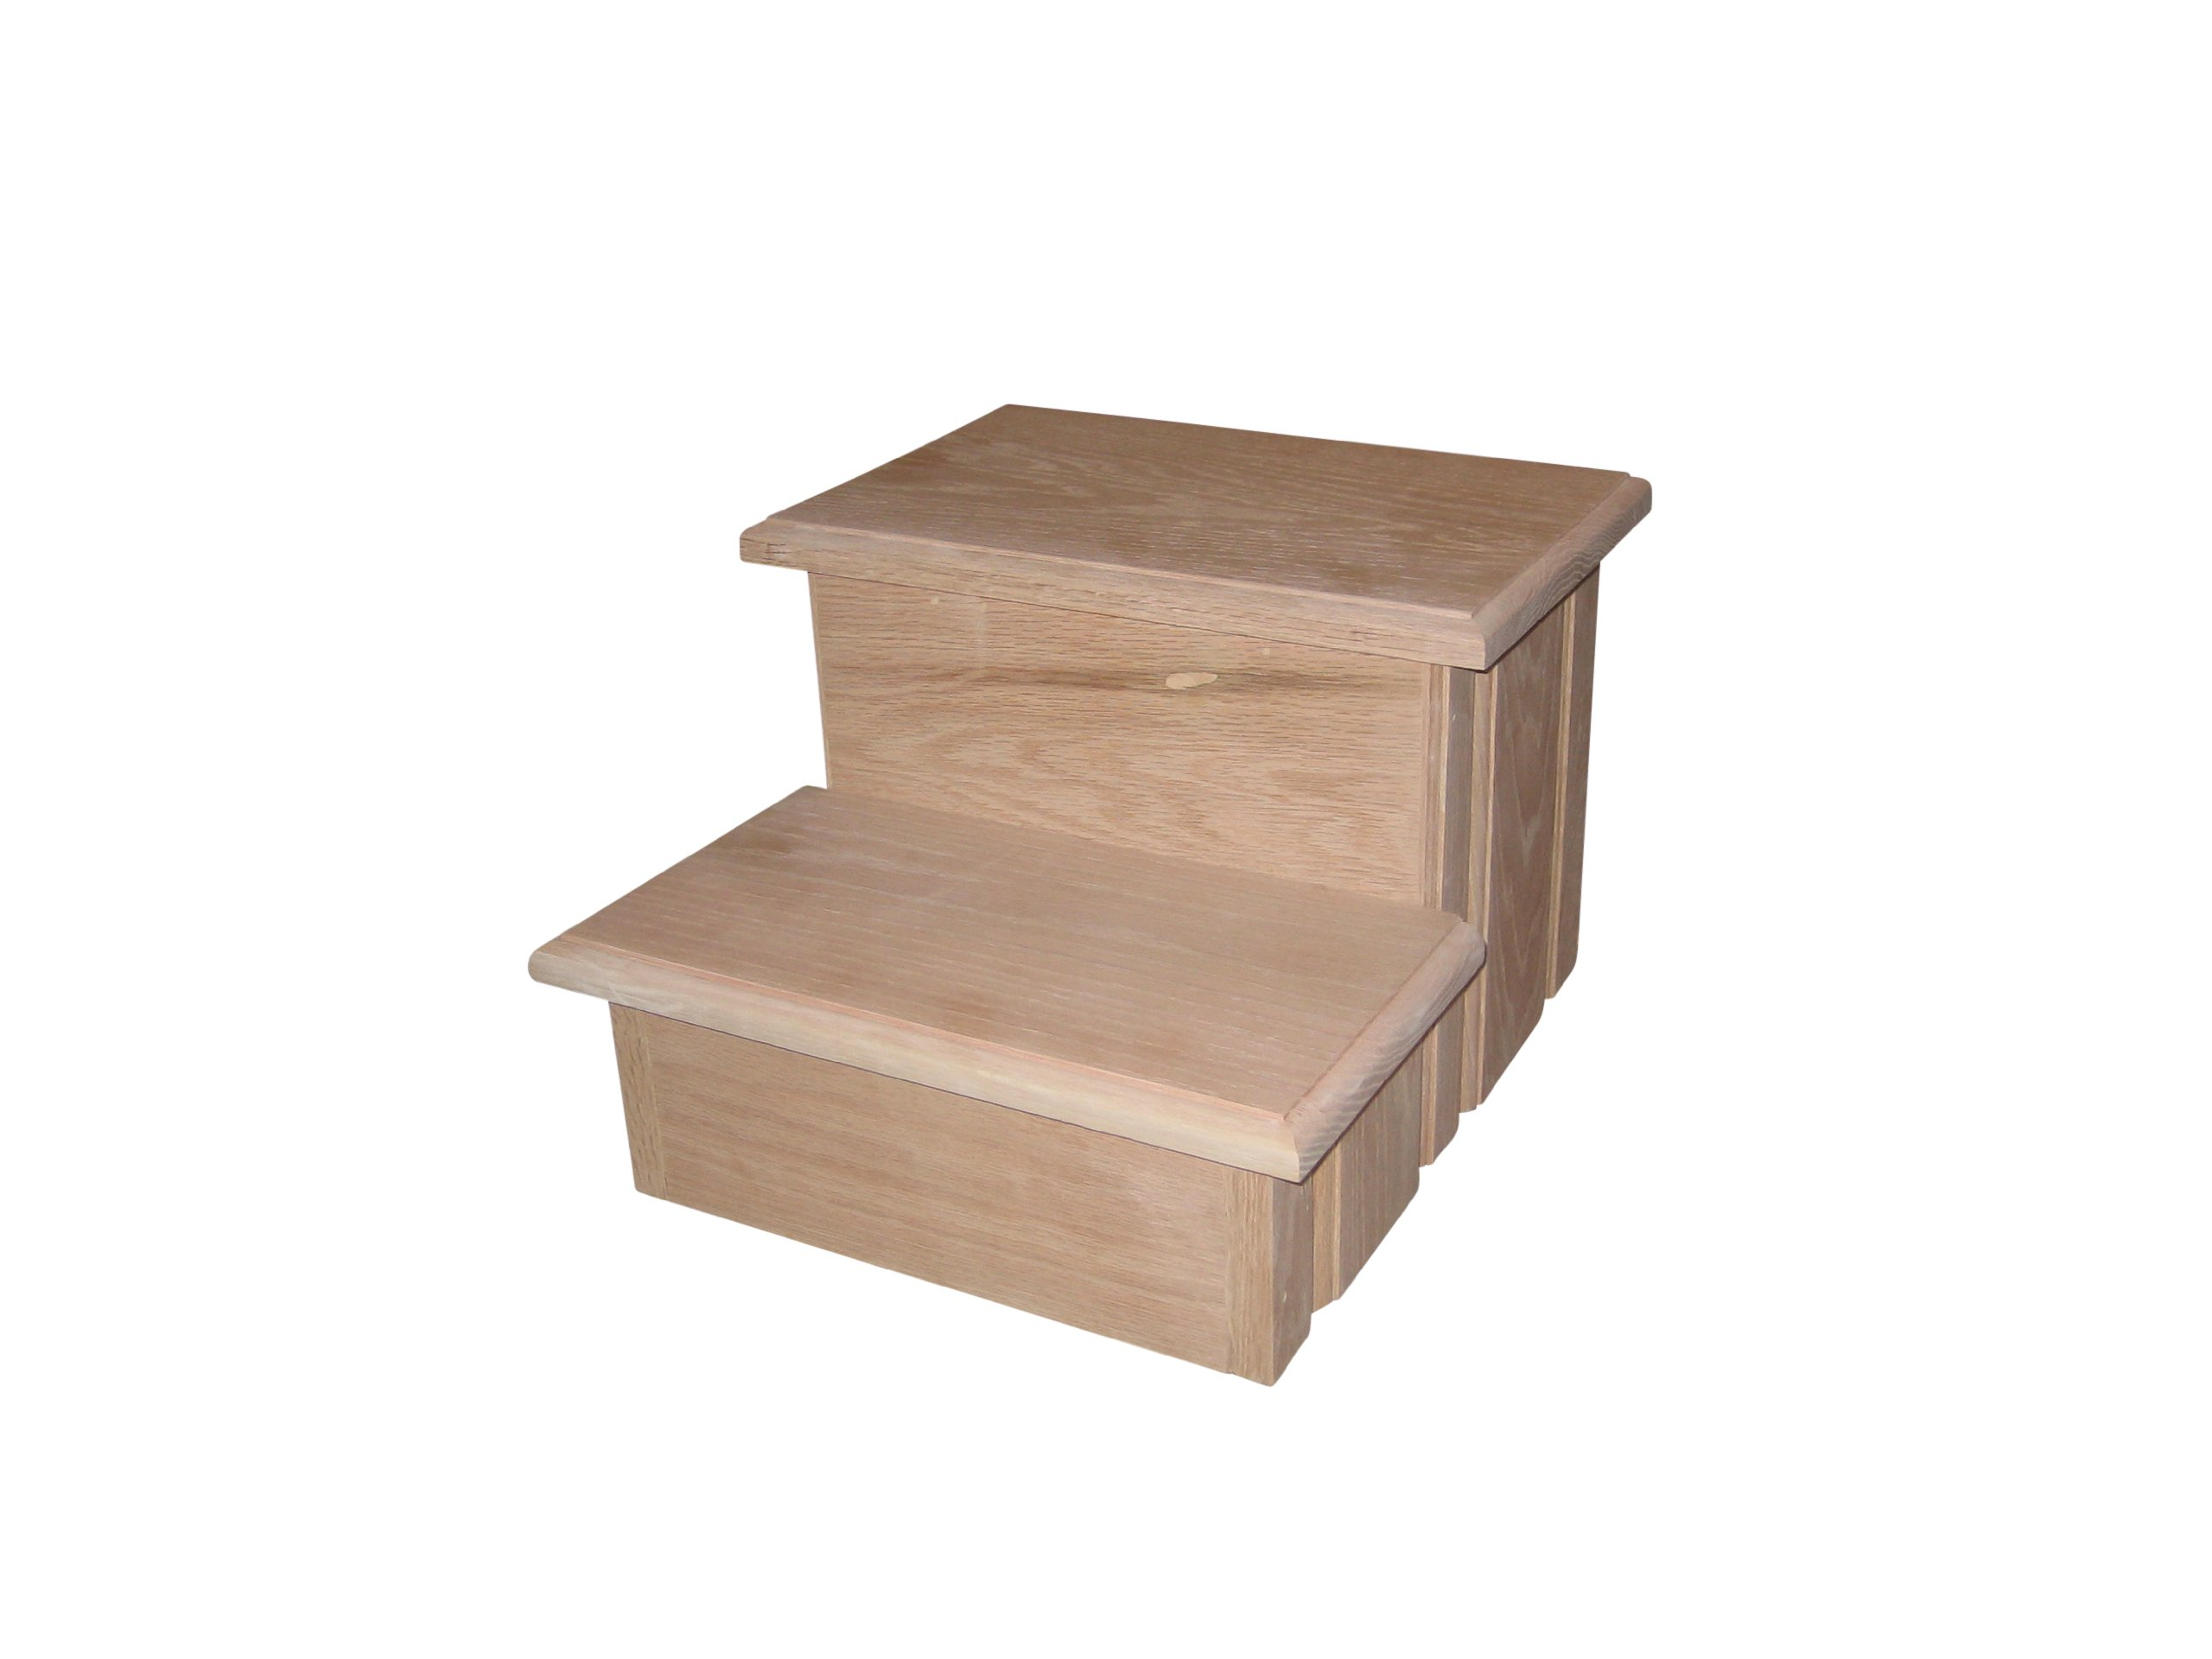 sc 1 st  TheSteppingStool.com & Unfinished Wooden Step Stools for Kids - TheSteppingStool.com islam-shia.org